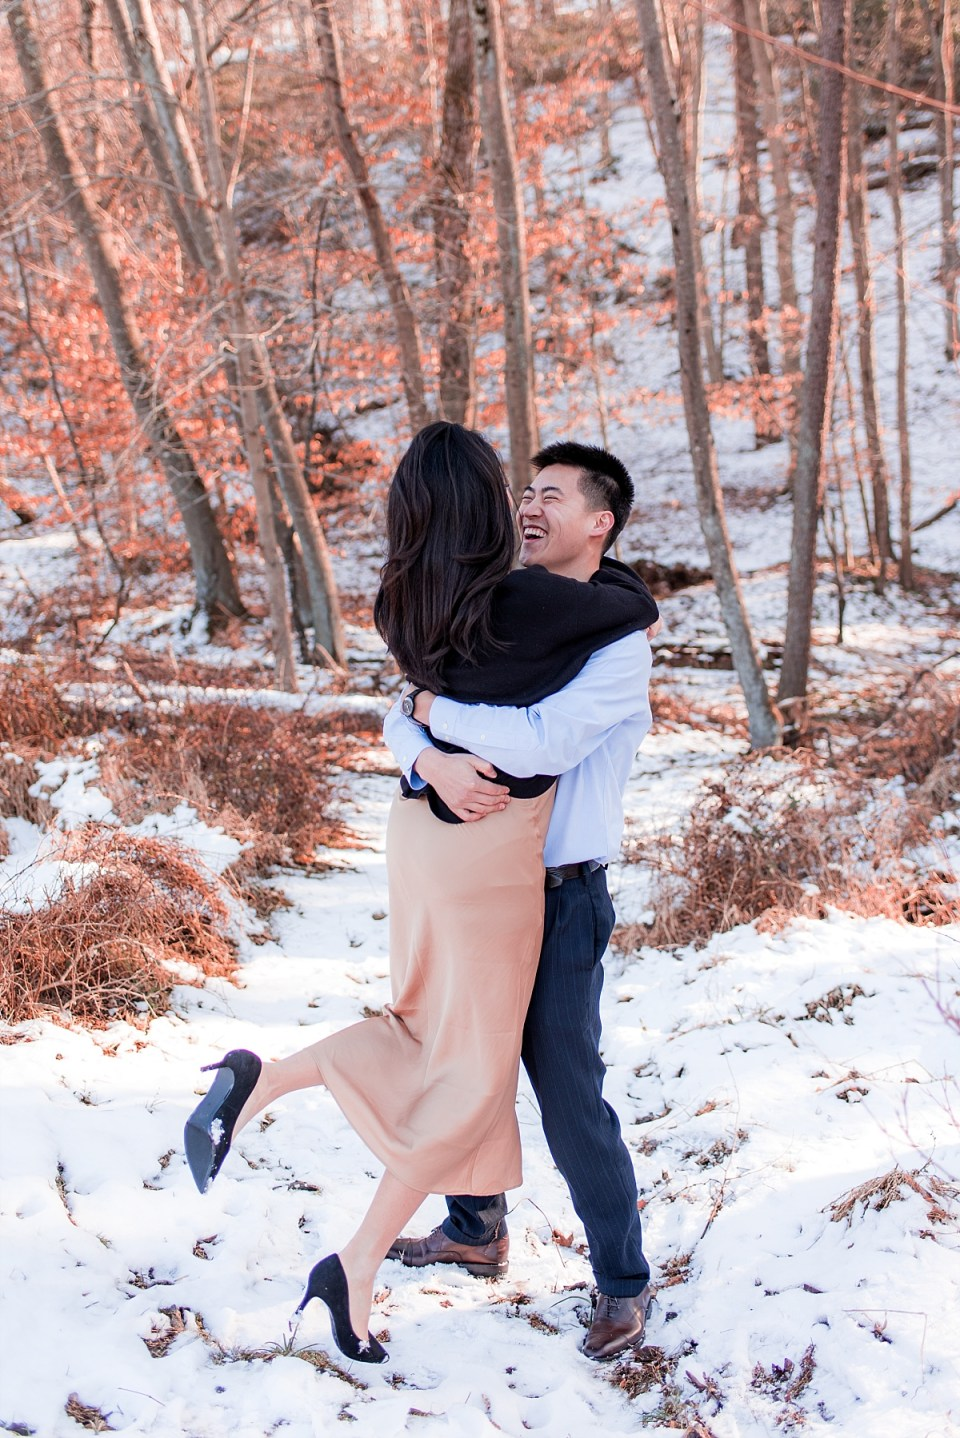 Clifton_Virginia_Engagement_Session_Erin_Tetterton_Photography_0011.jpg